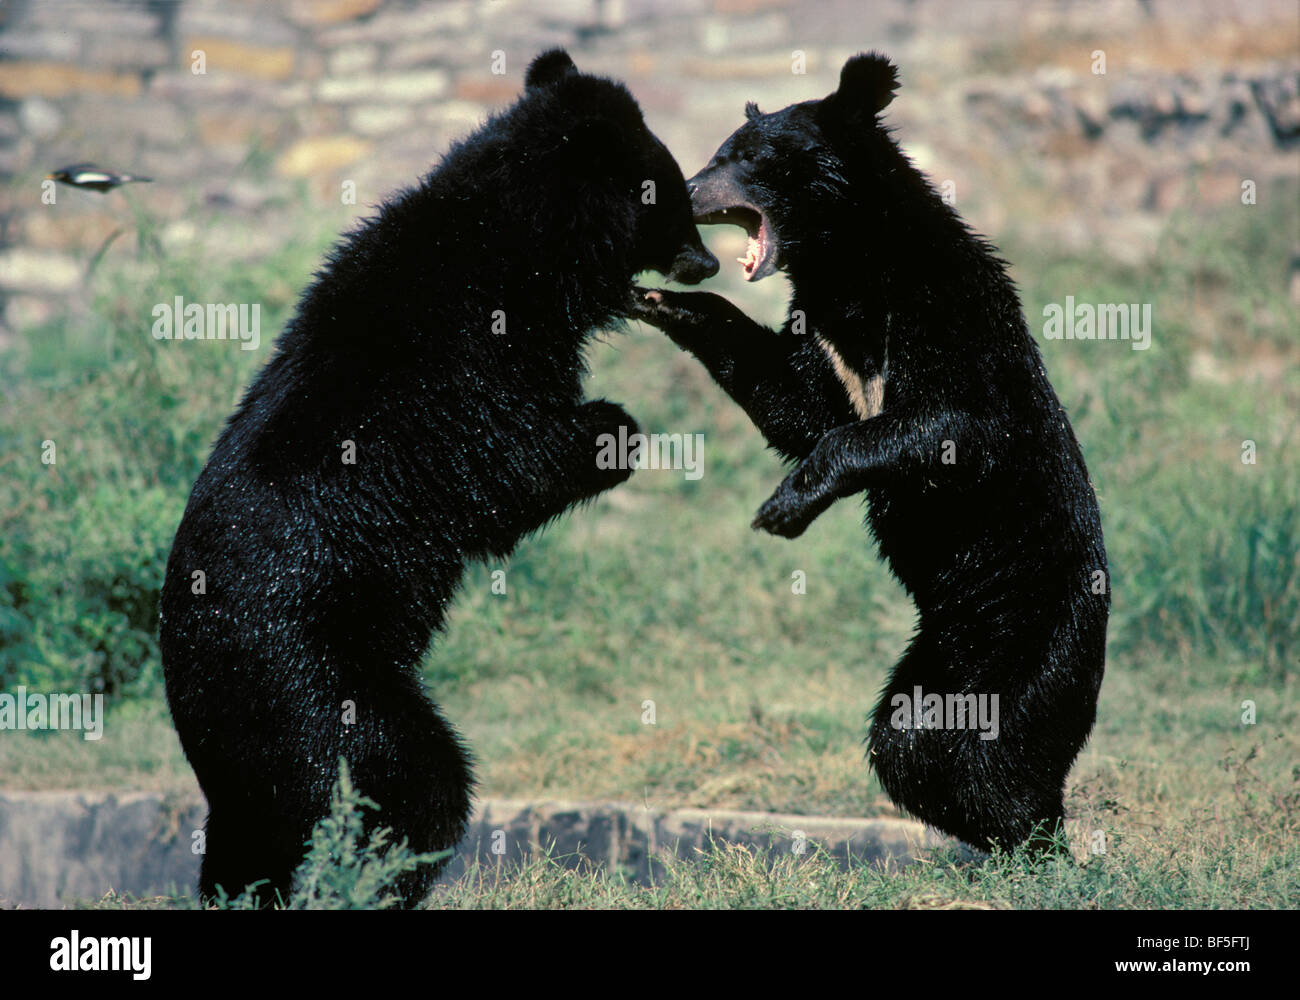 Asiatic Black Bears (Ursus thibetanus) fighting, Asia Stock Photo